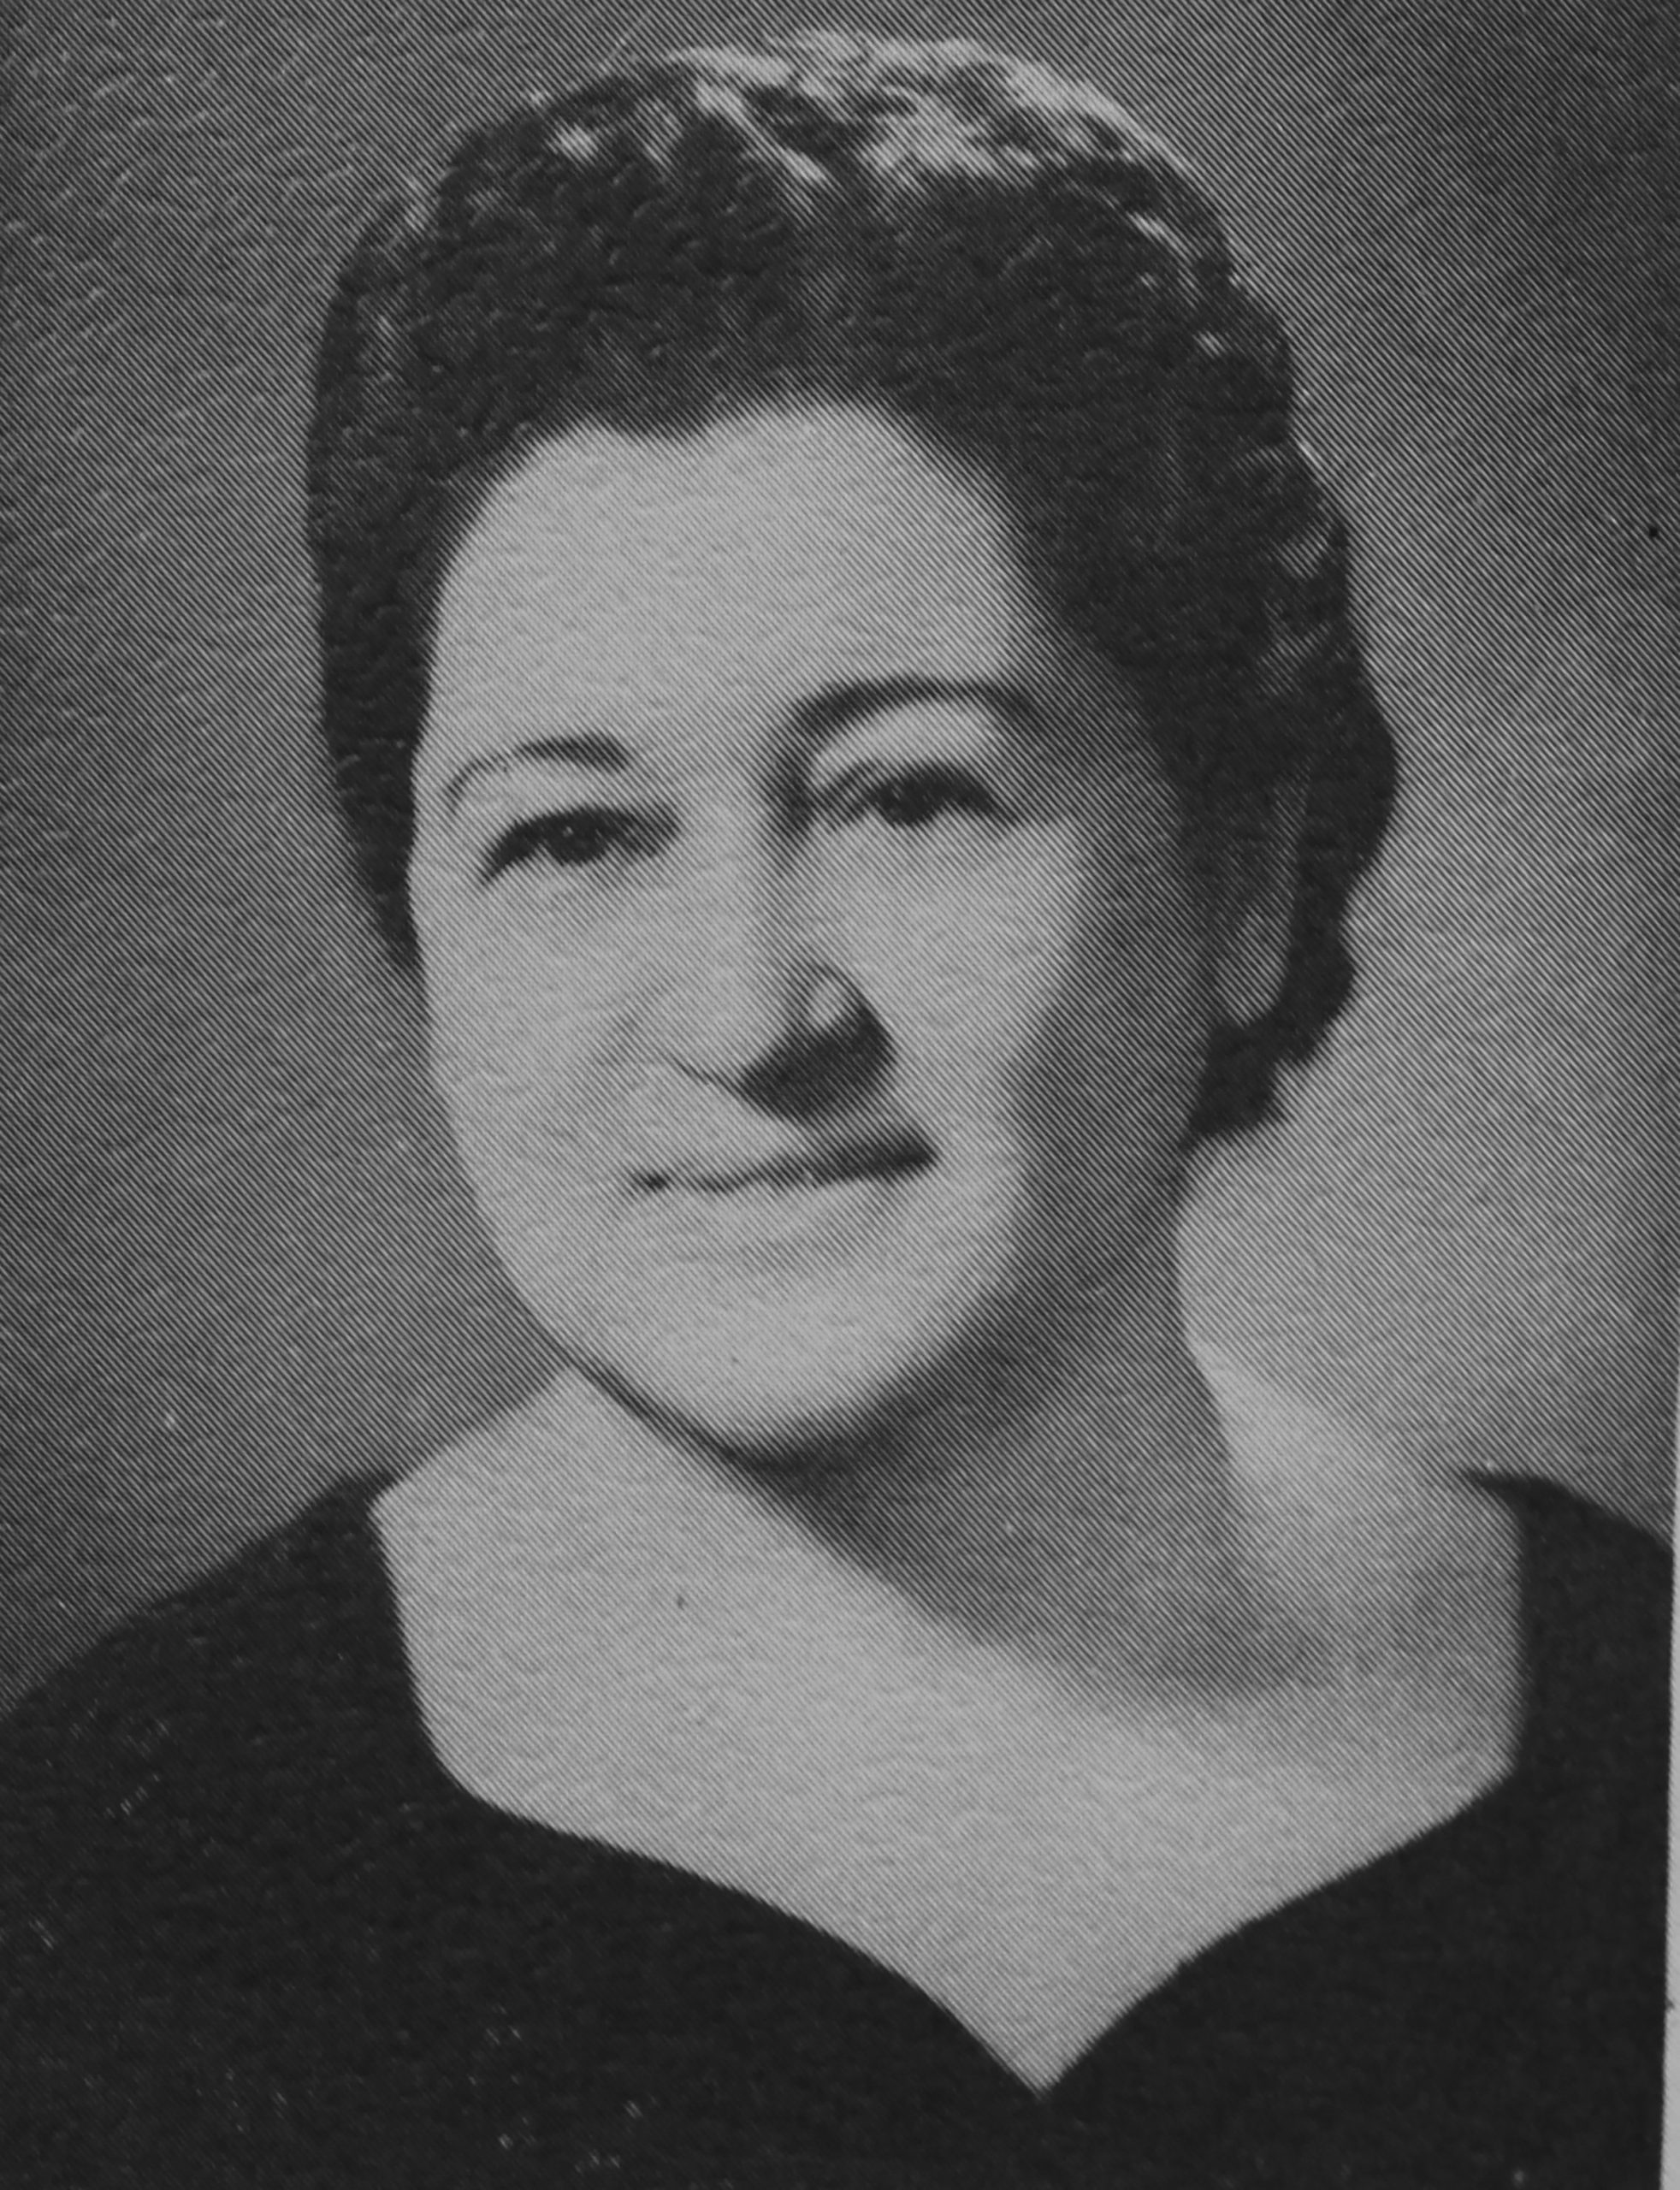 Dean of Students (1968-1975)